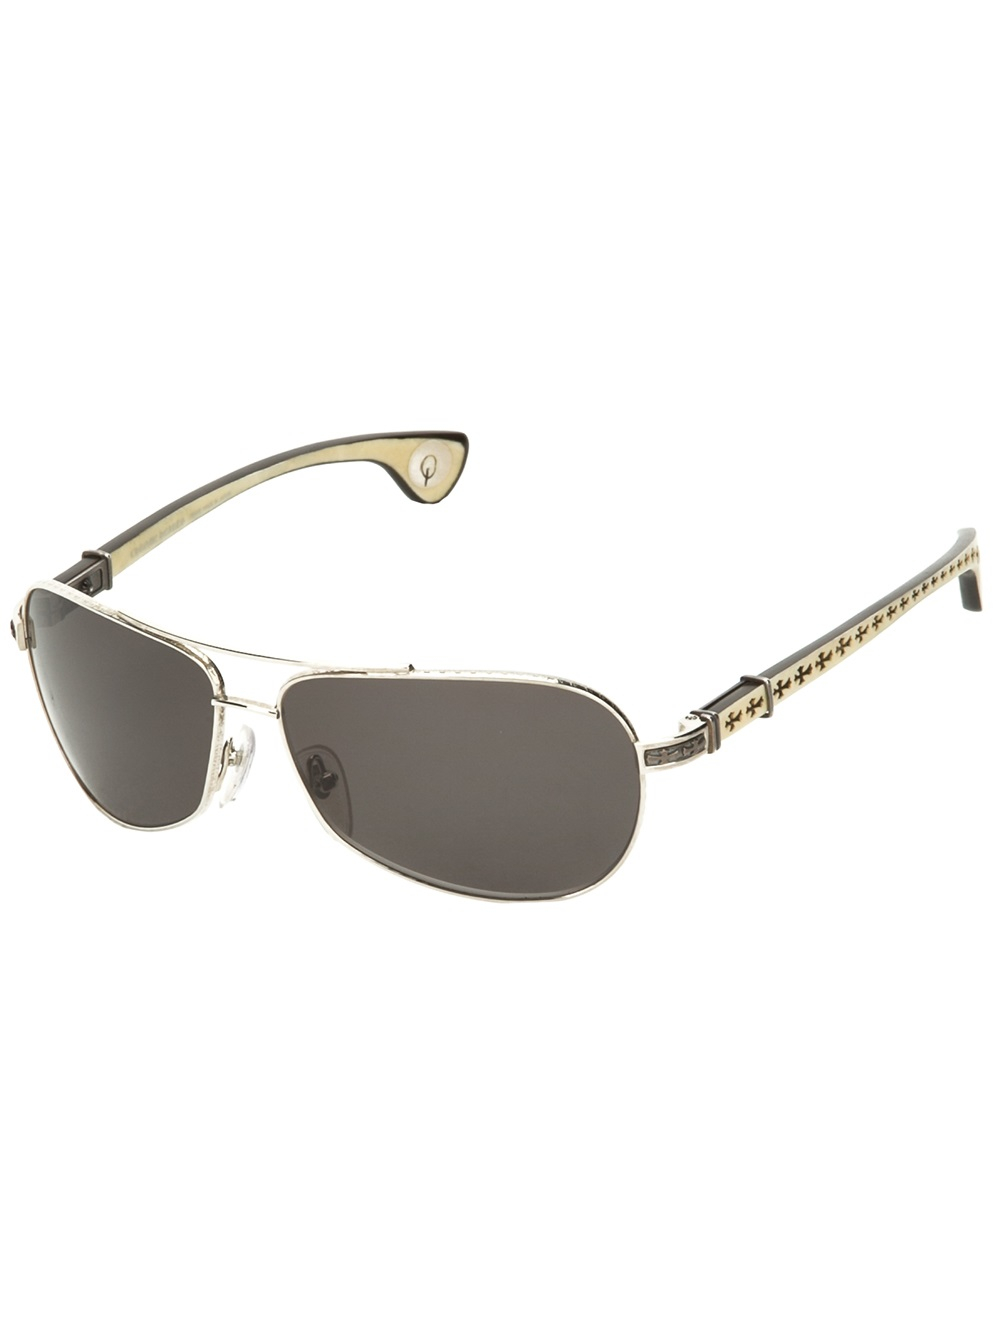 4e943cc0866c Lyst - Chrome Hearts The Best Sunglasses in Natural for Men